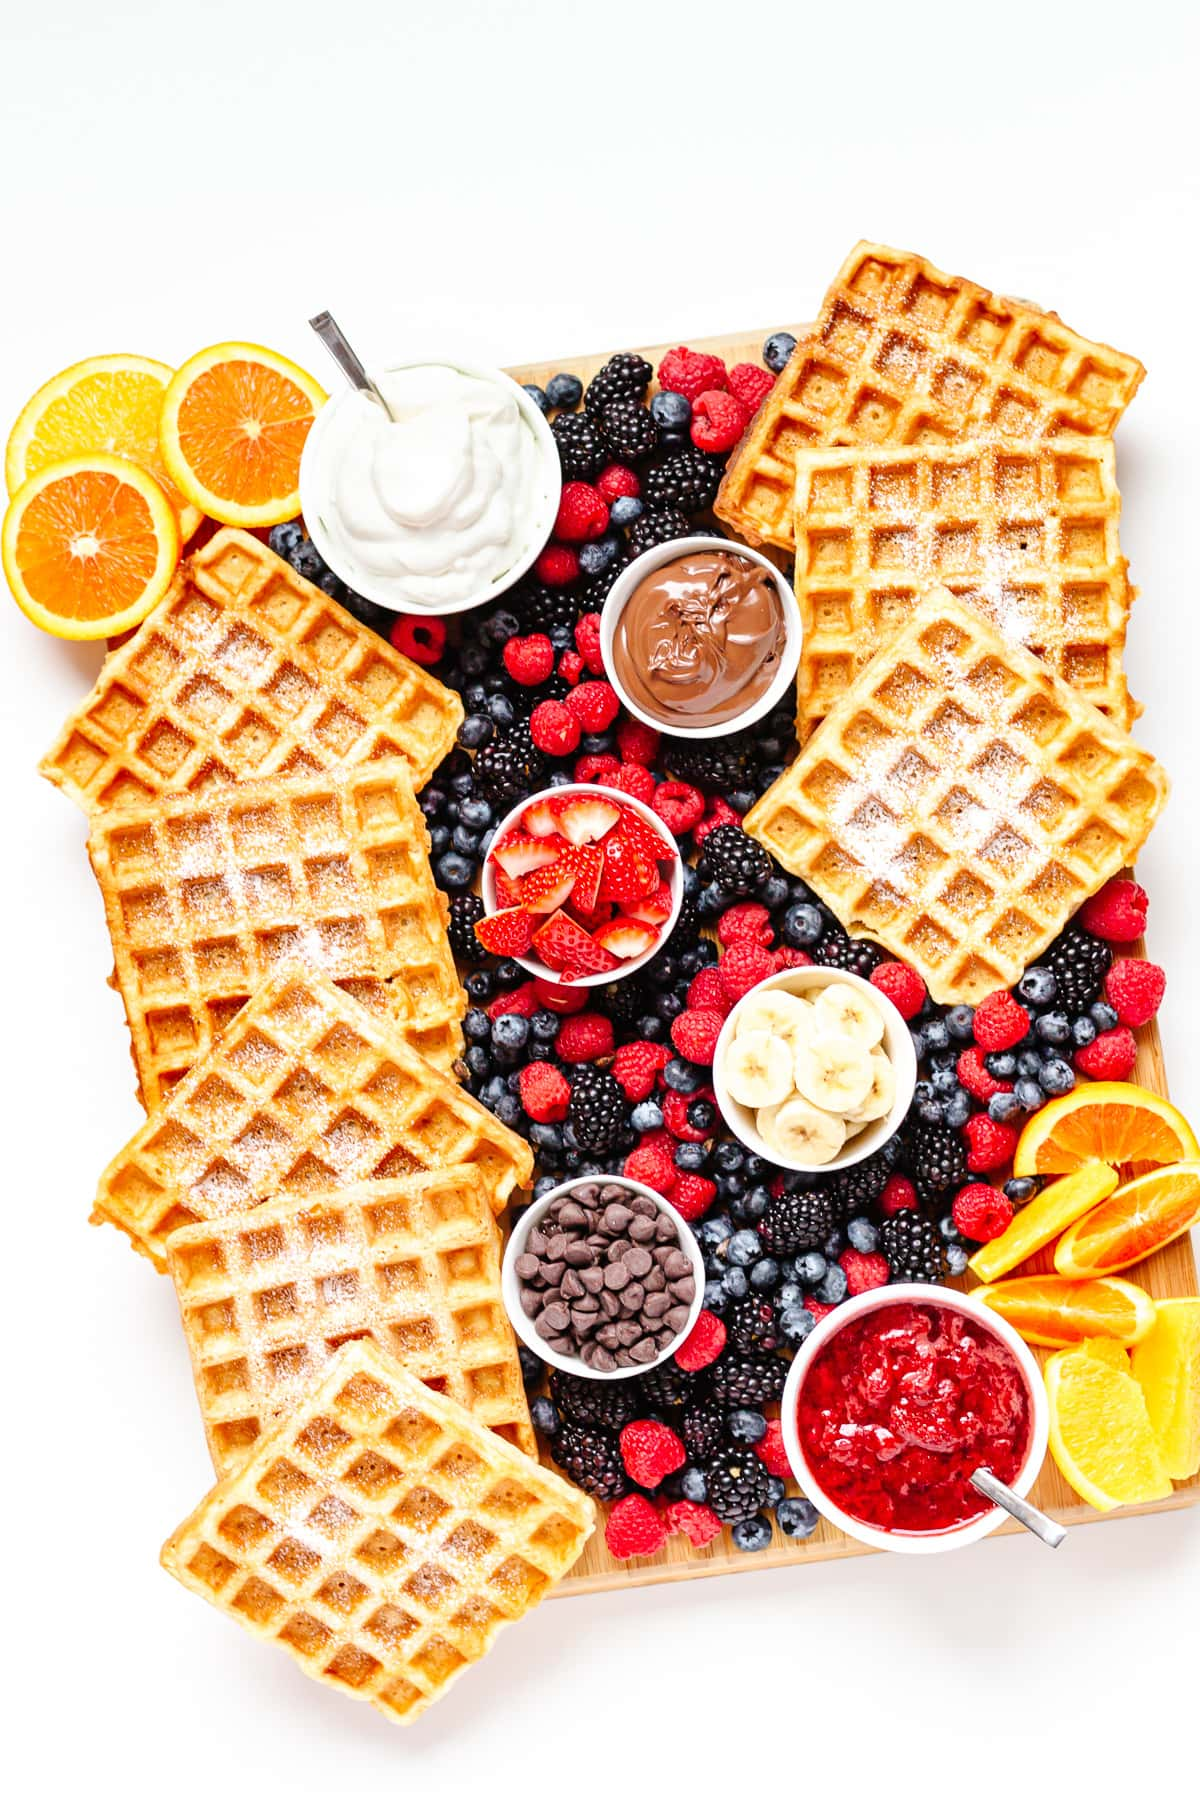 A waffle brunch board  featuring german waffles, bowls of toppings and fresh fruit.